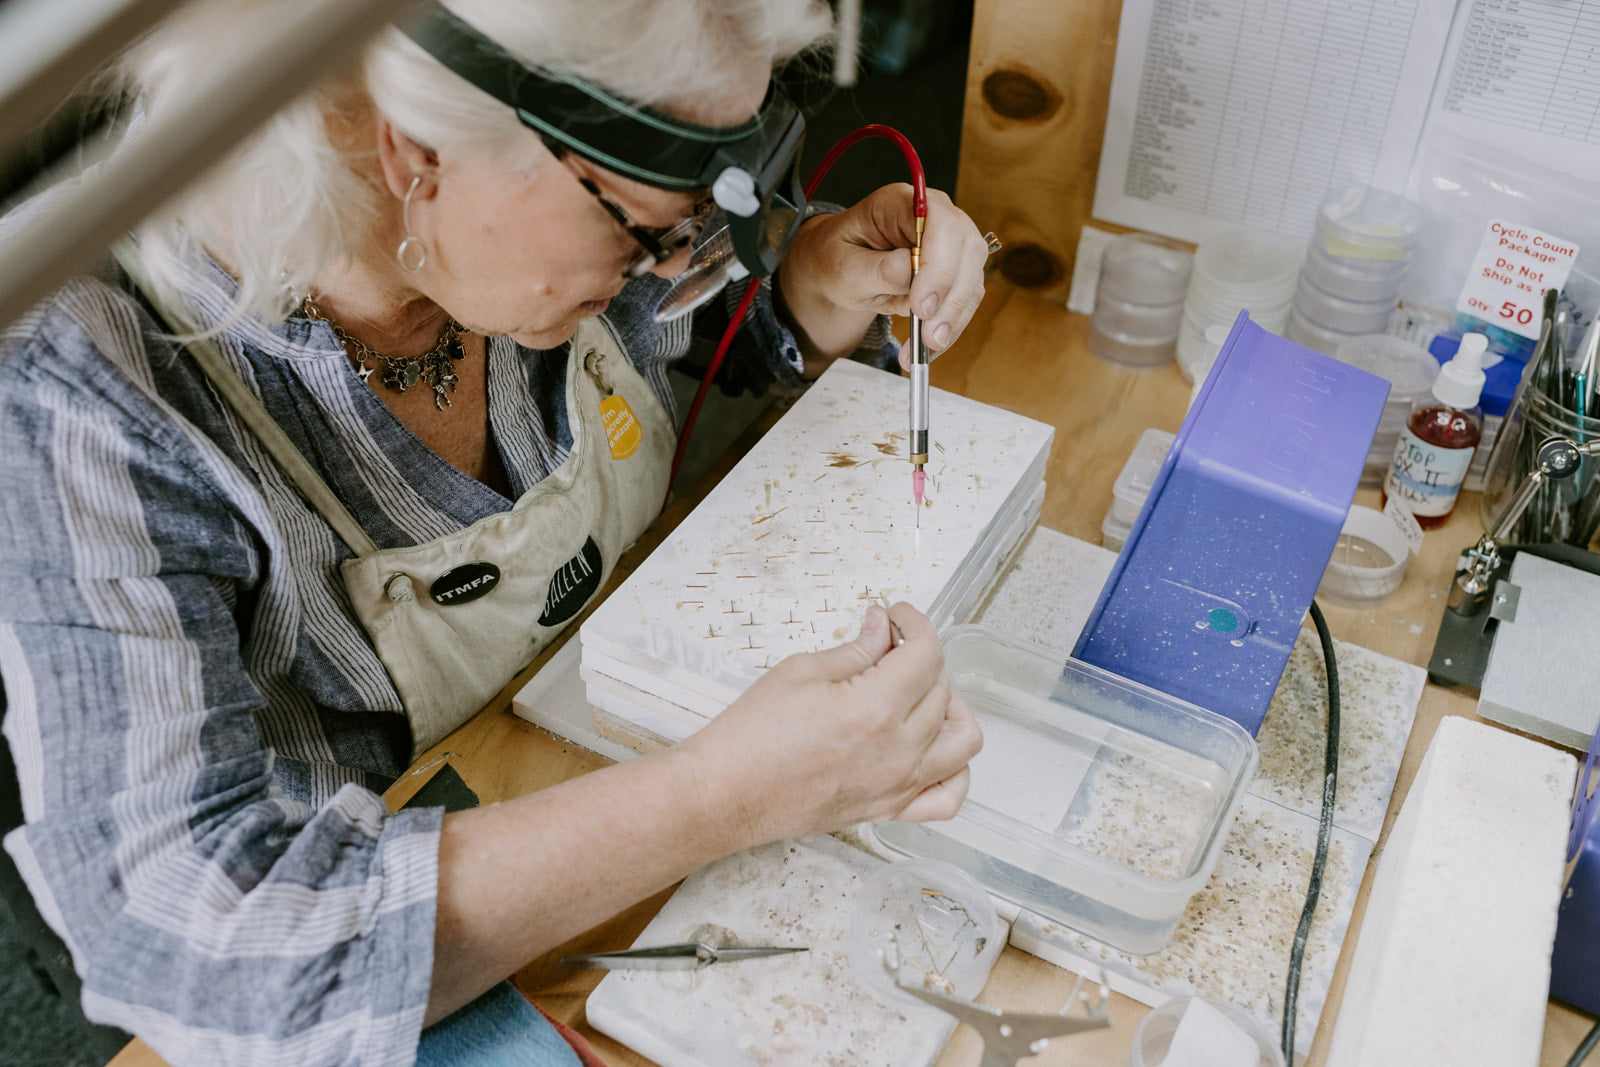 Baleen jewelry being made by hand